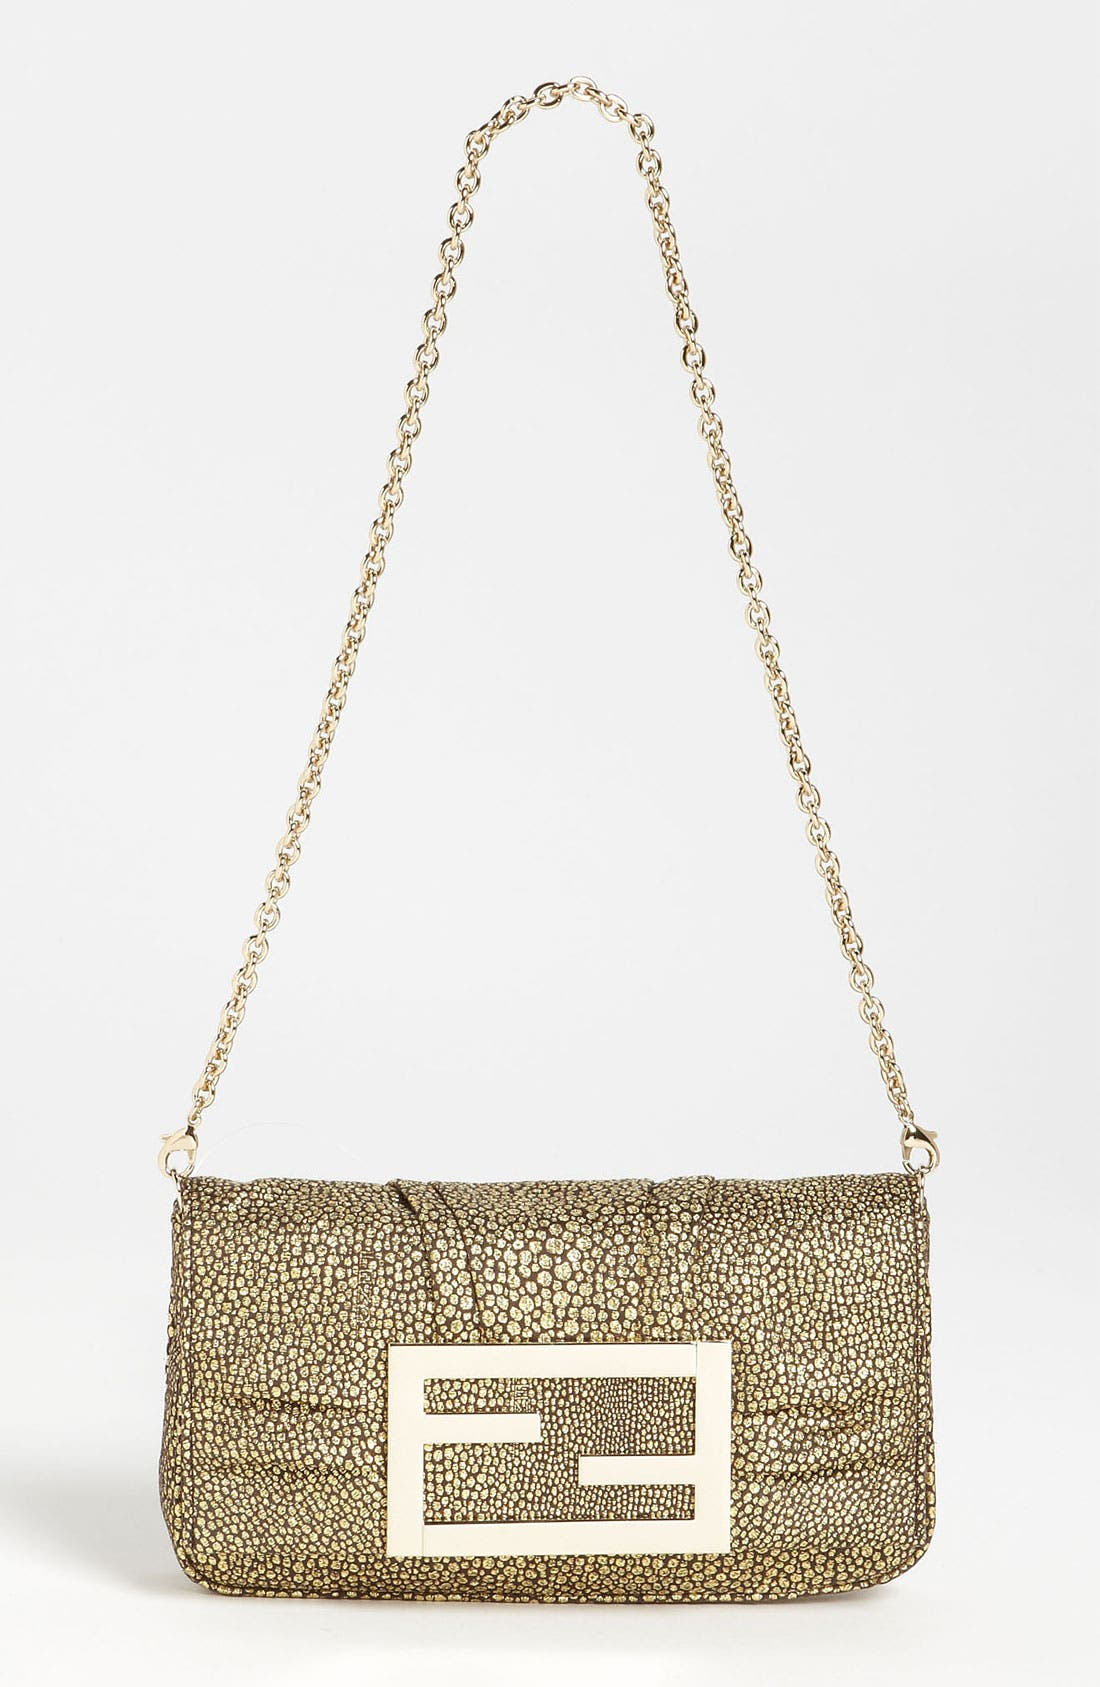 Main Image - Fendi 'Mia' Fabric Evening Bag